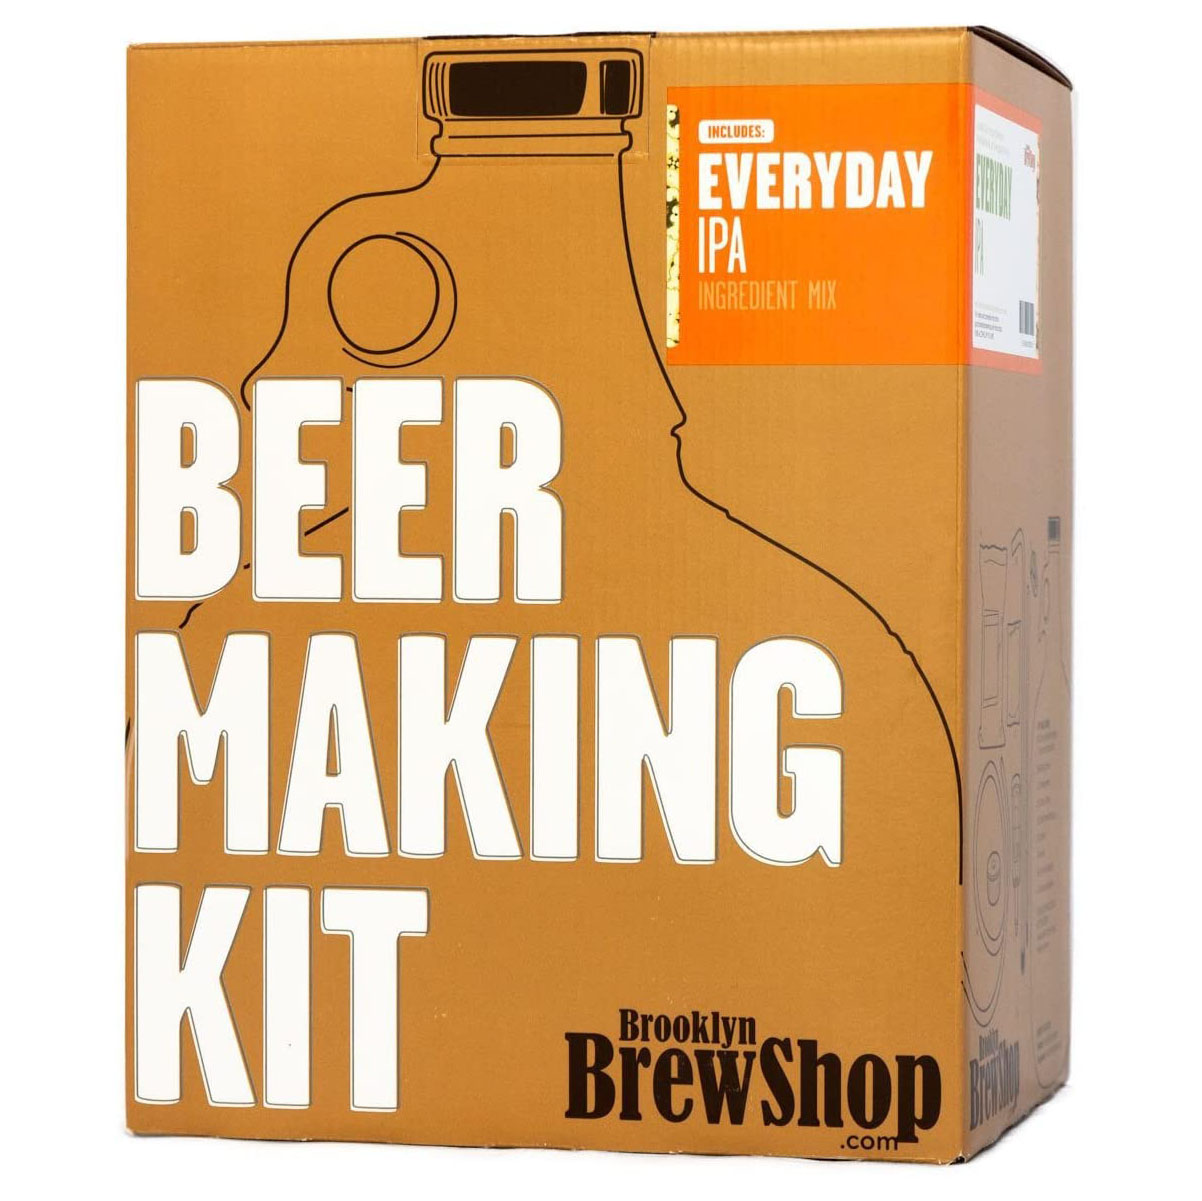 Brooklyn Brew Shop Everyday IPA Beer Making Kit, best gifts for dad